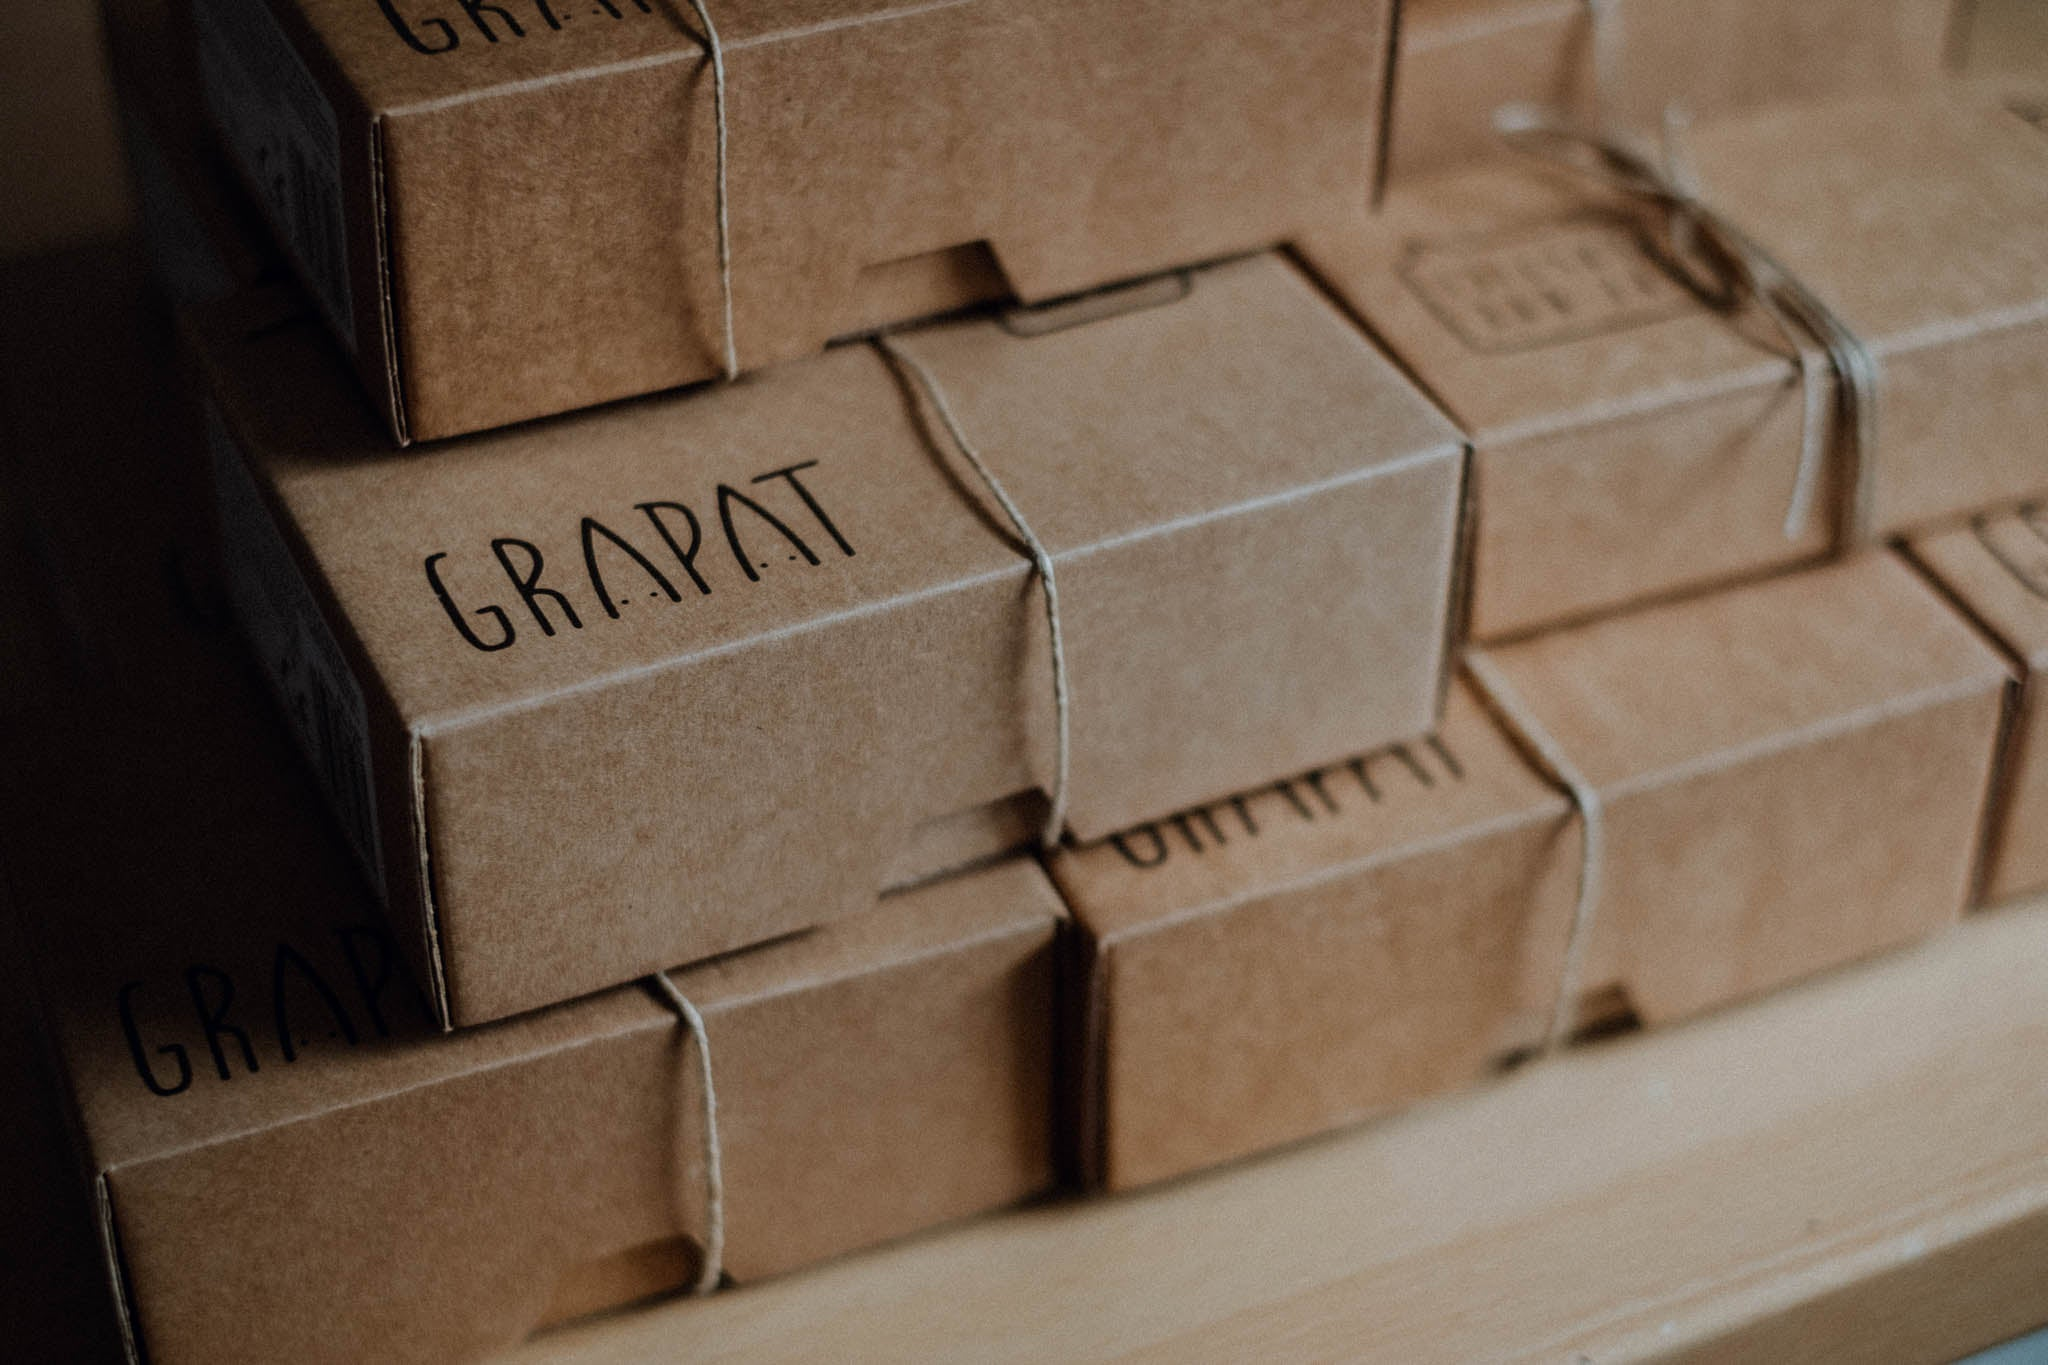 Grapat #noplanetb plastic-free products and packaging